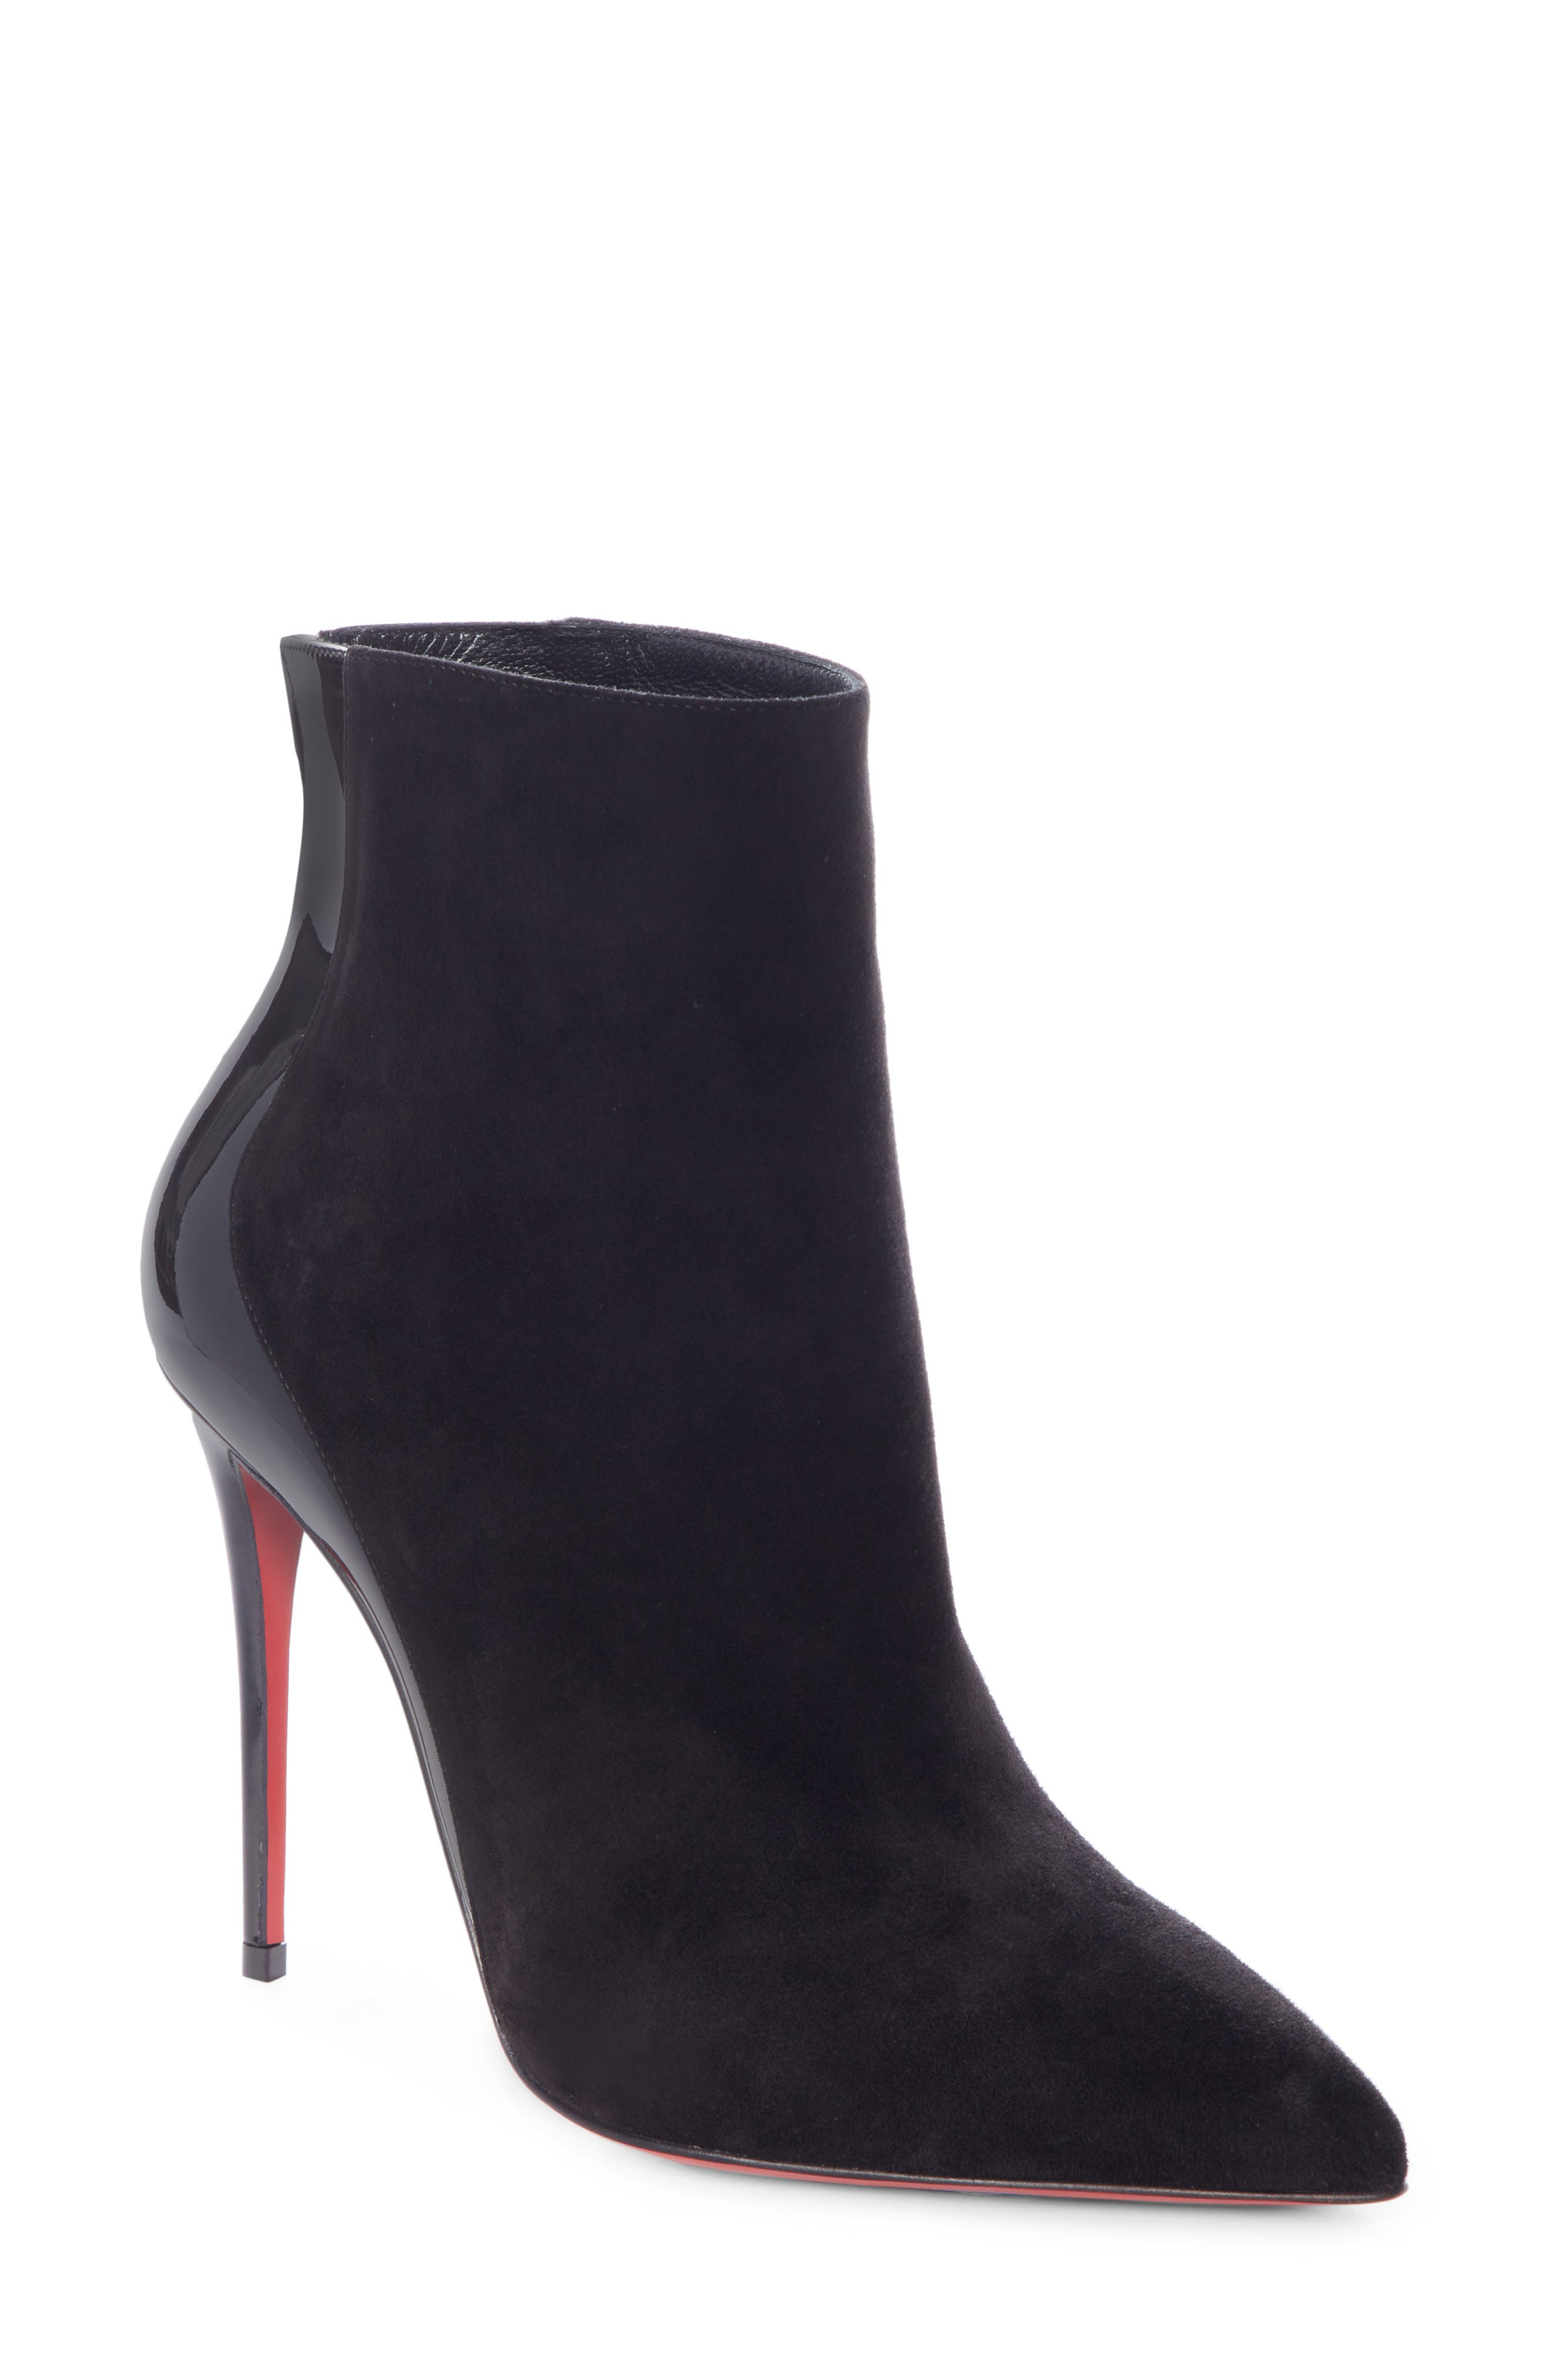 CHRISTIAN LOUBOUTIN, Delicotte Pointy Toe Bootie, Main thumbnail 1, color, BLACK/ BLACK